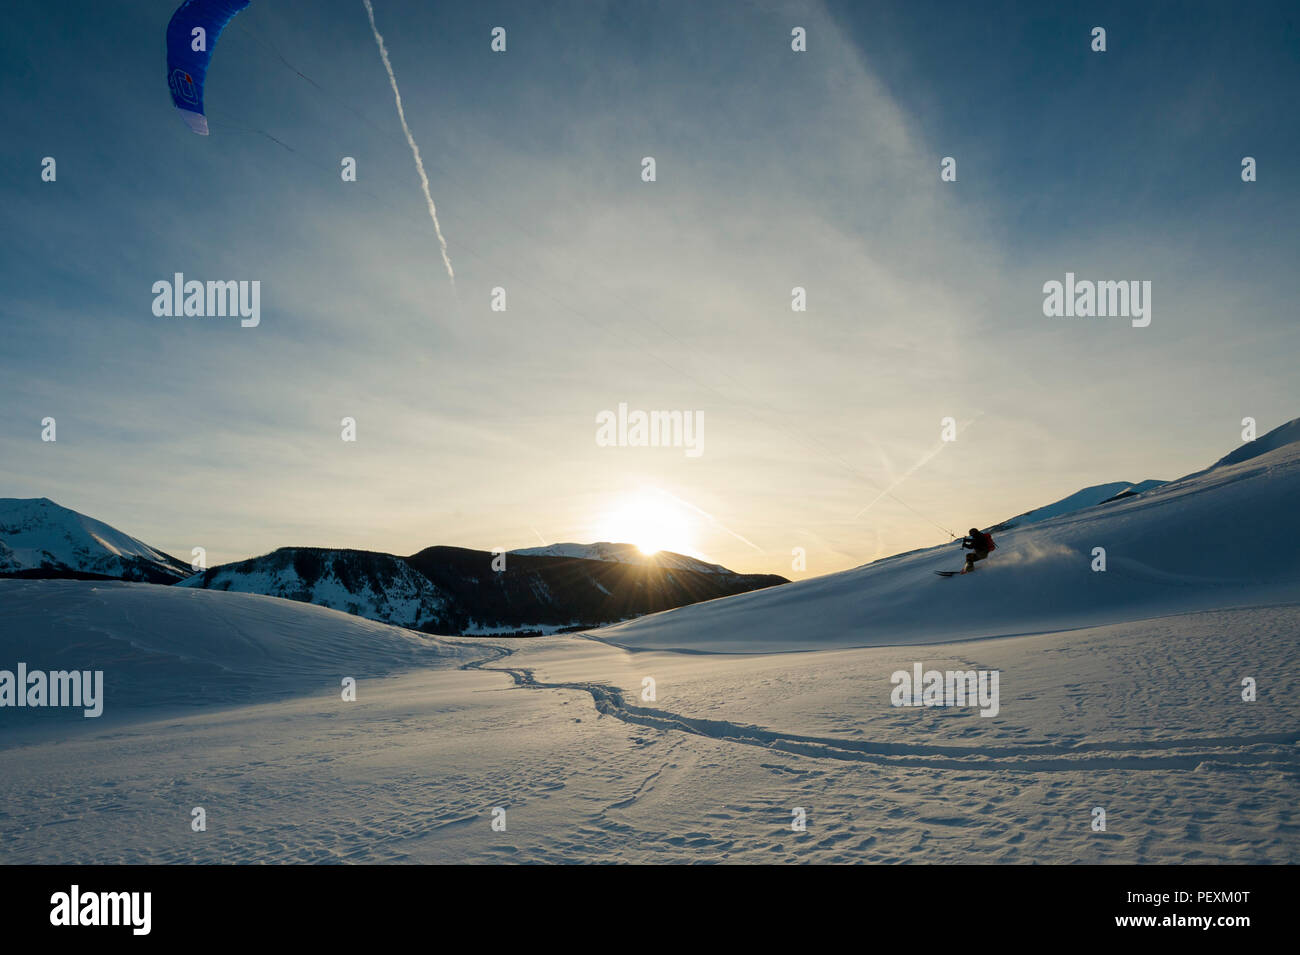 Man snowkiting near Crested Butte, Colorado, USA - Stock Image